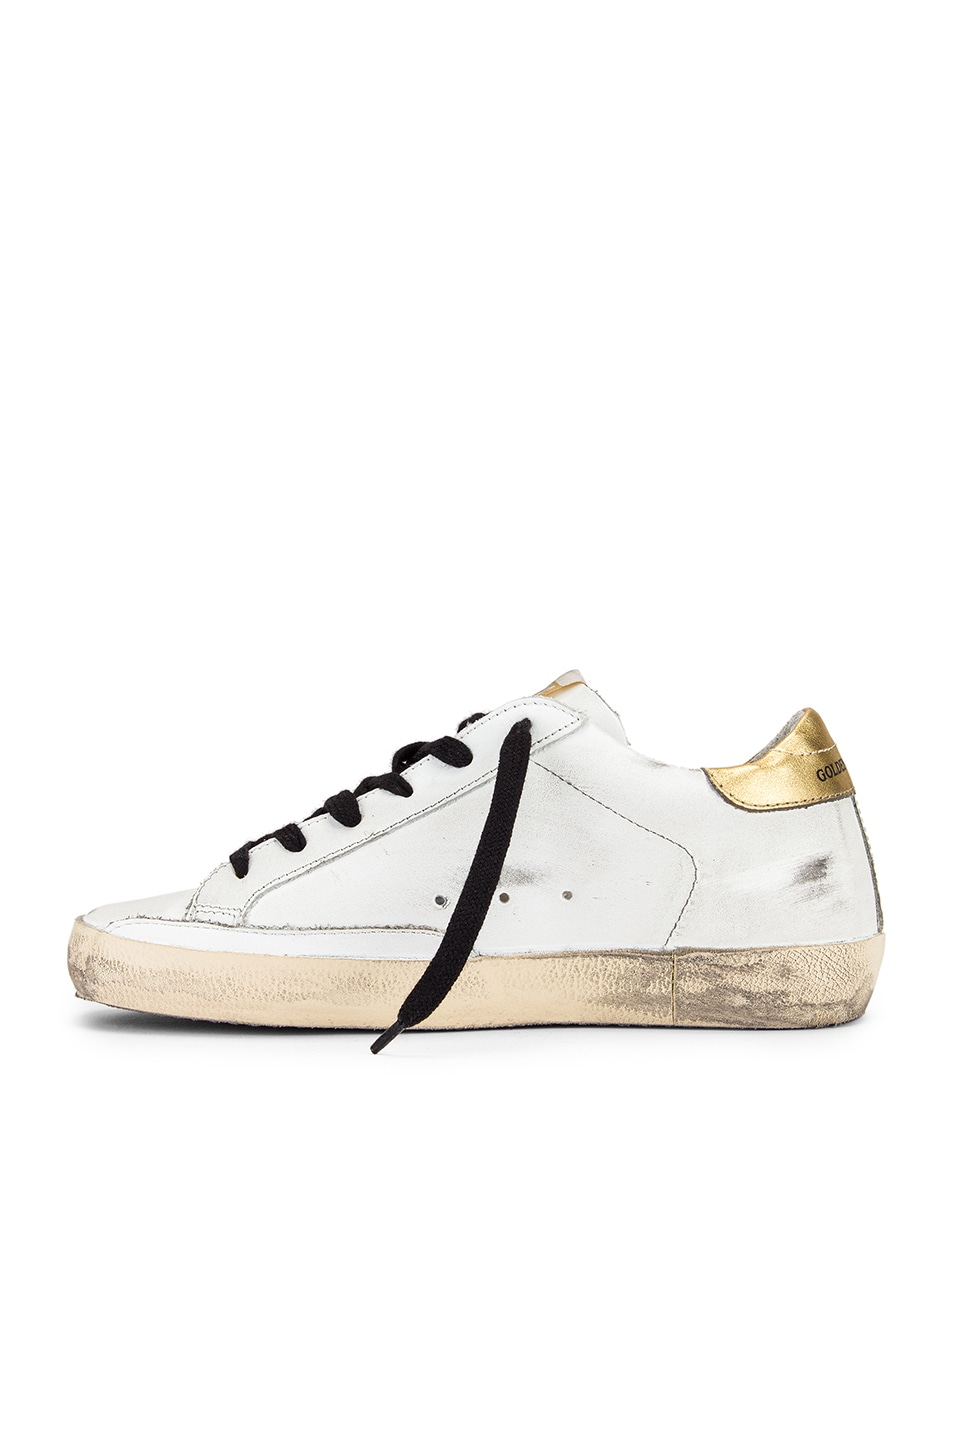 Image 5 of Golden Goose Superstar Sneaker in White Leather & Gold Leopard